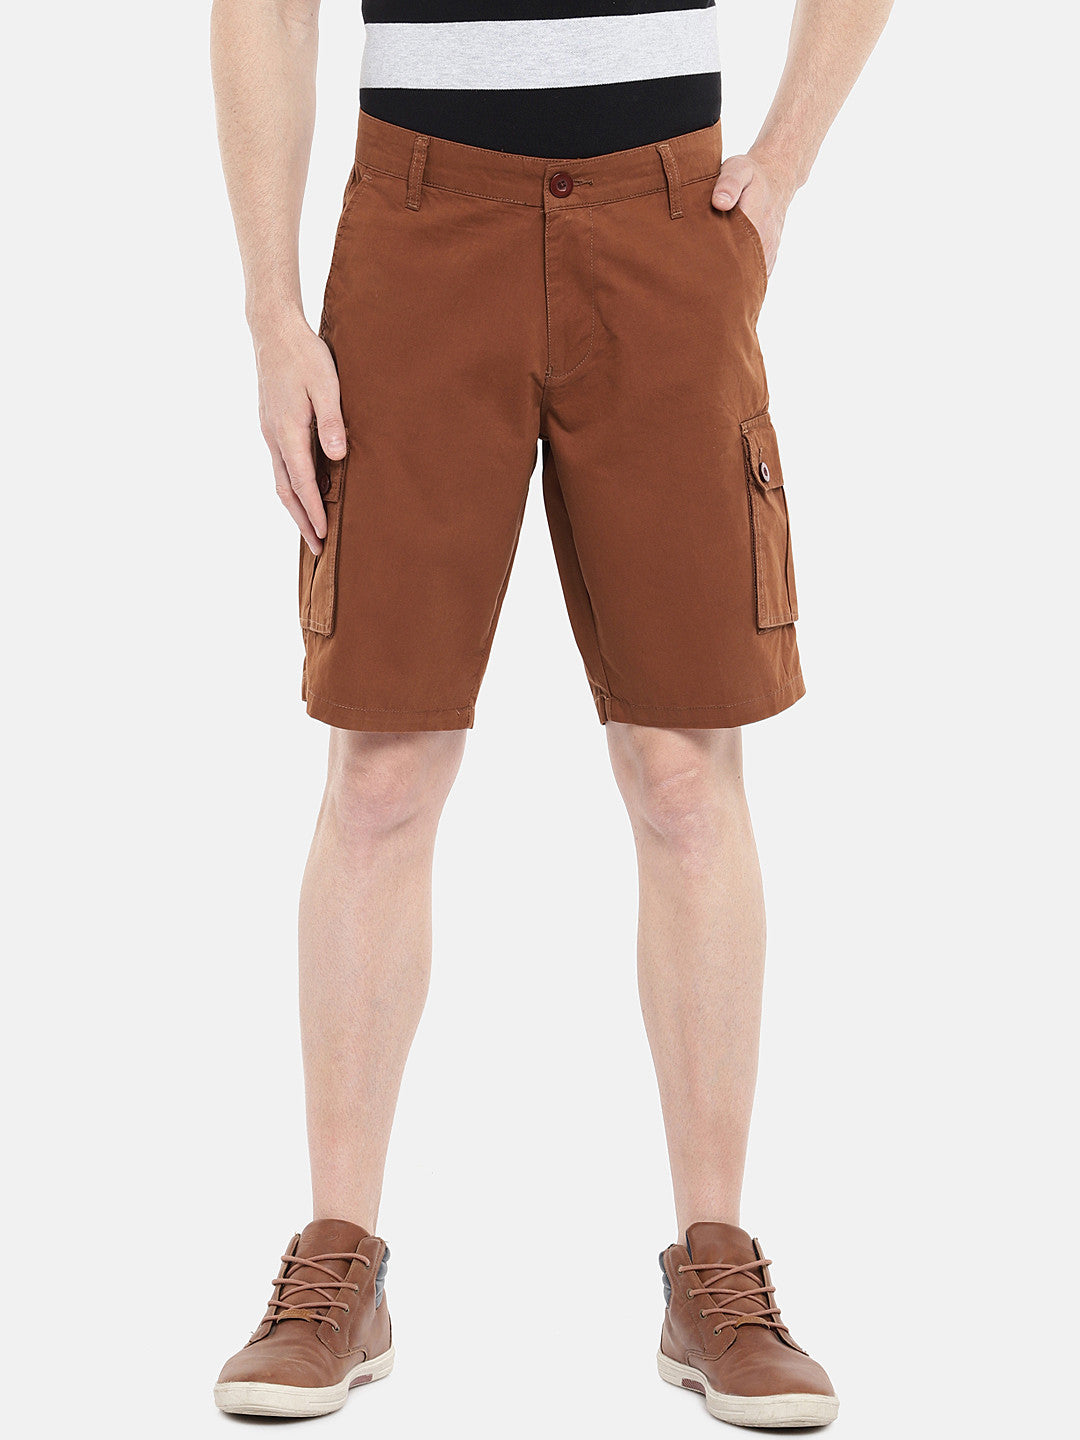 Orange Solid Regular Fit Cargo Shorts-1